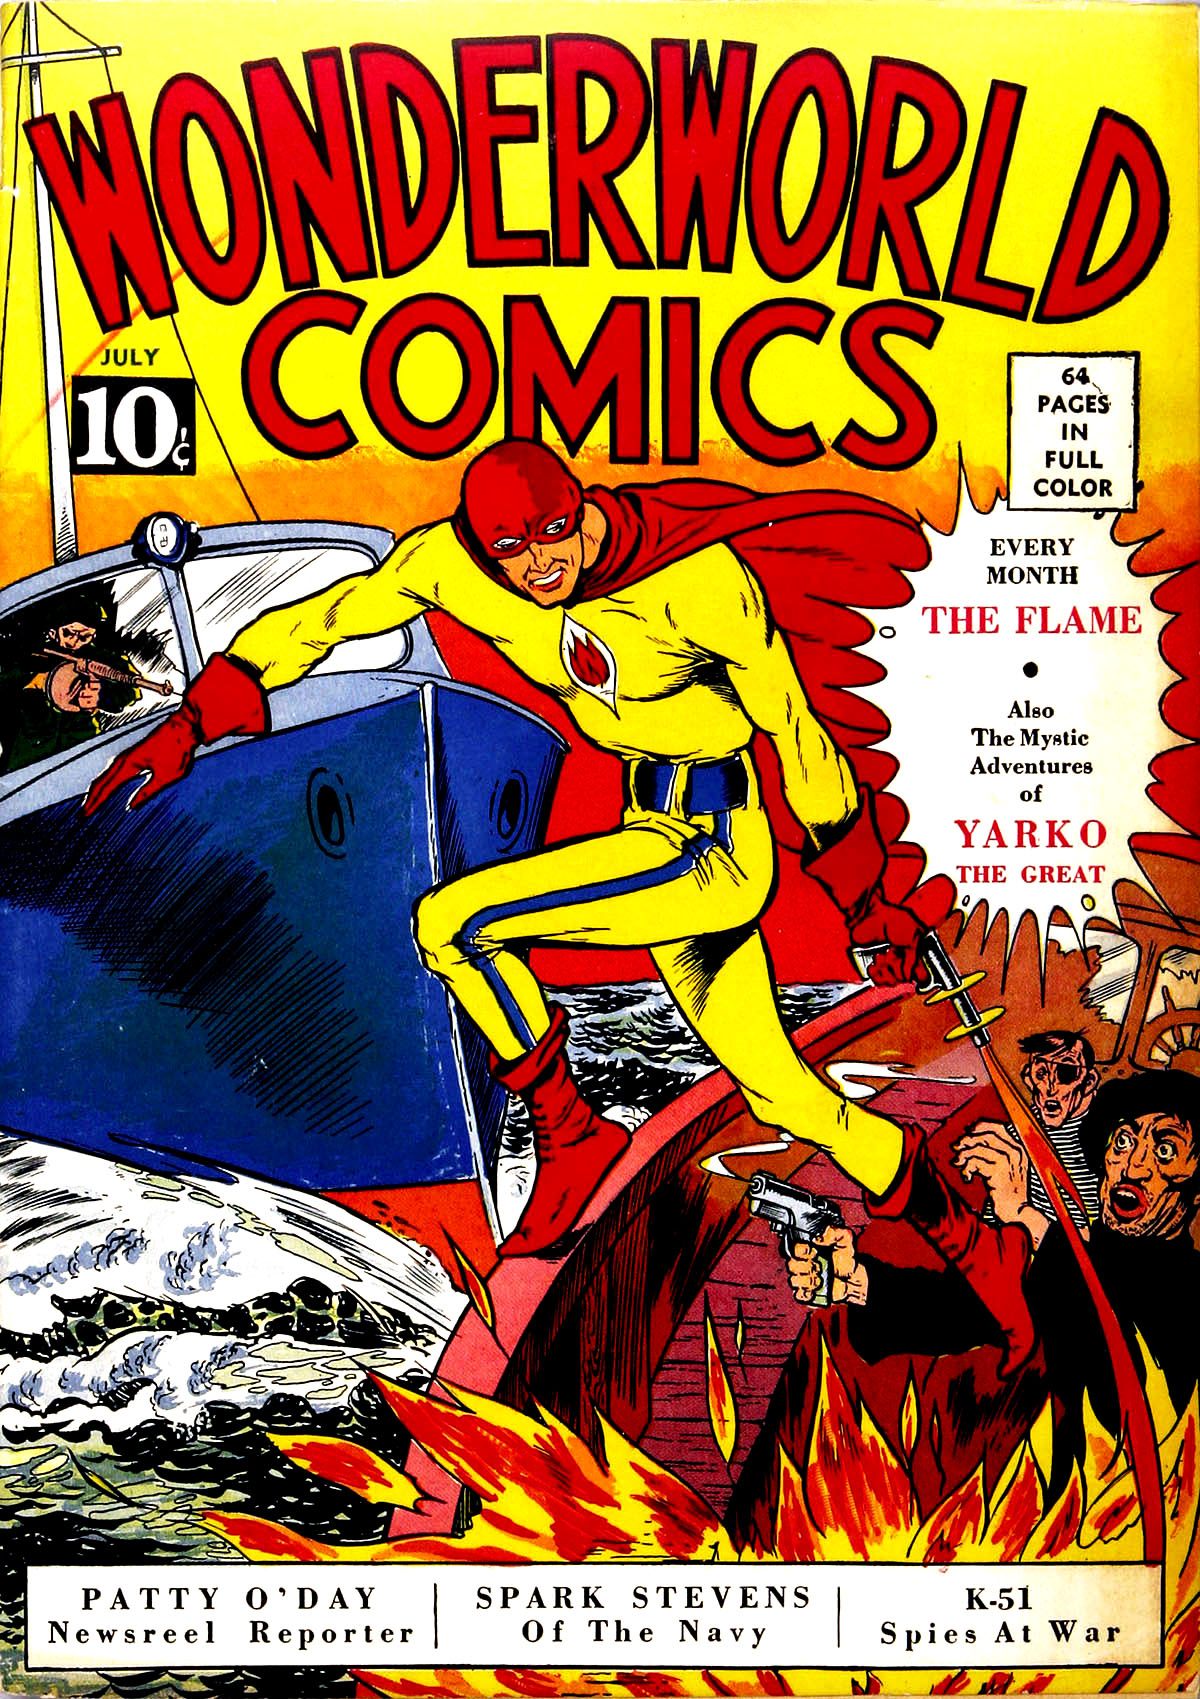 WonderworldComics1939.jpg